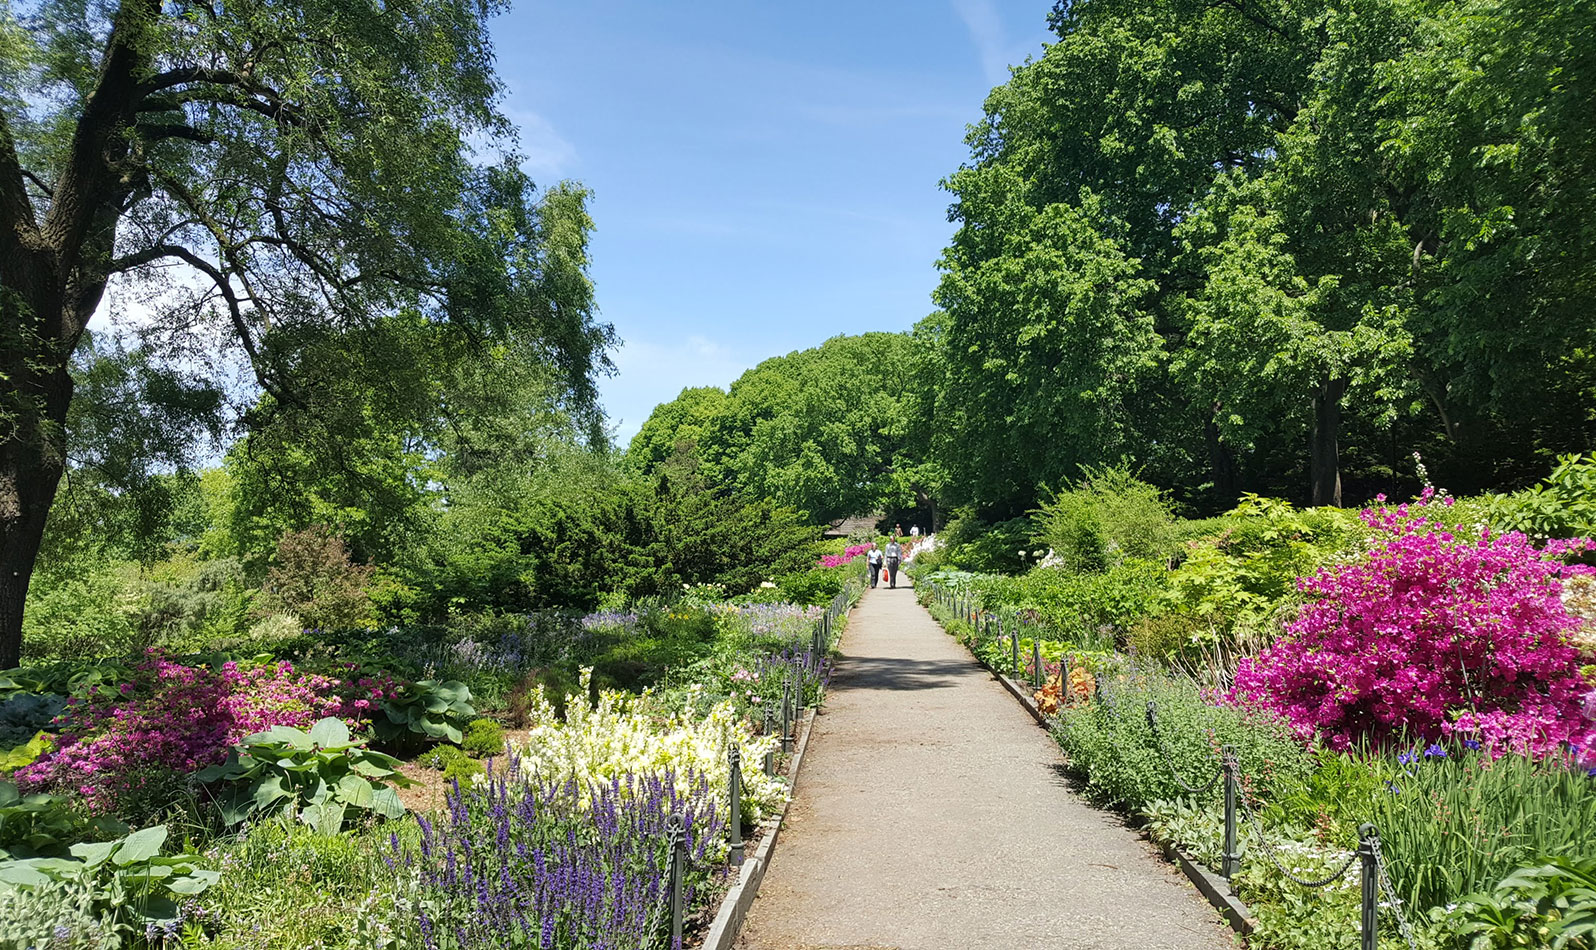 Massive, winding pathways lead through an urban forest and the famous Heather Garden.